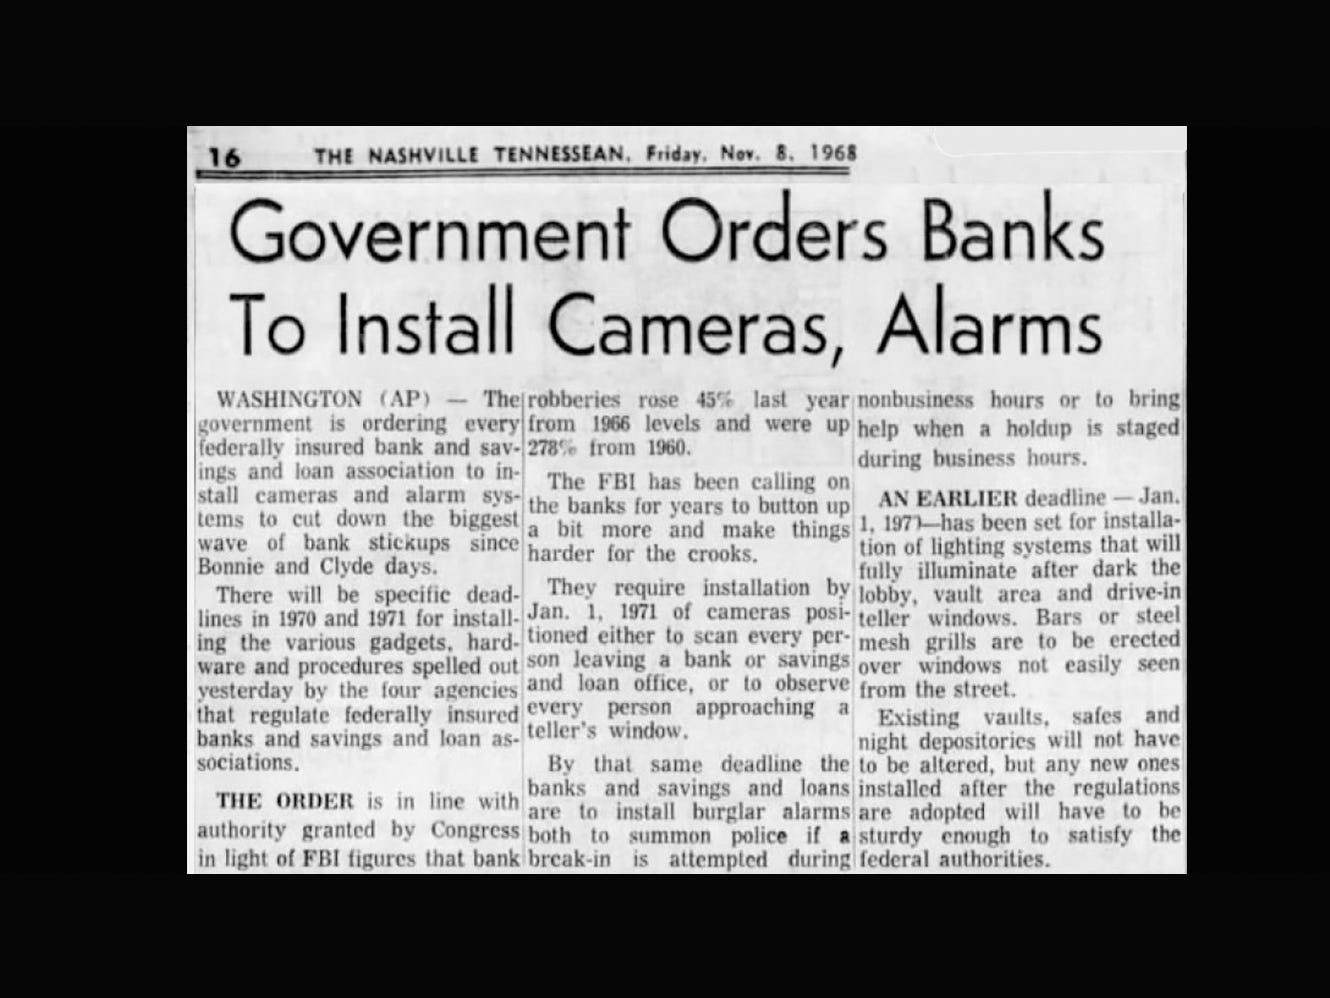 Tennessean clipping from 1968 reports on government mandate for banks to install cameras to deter robberies.